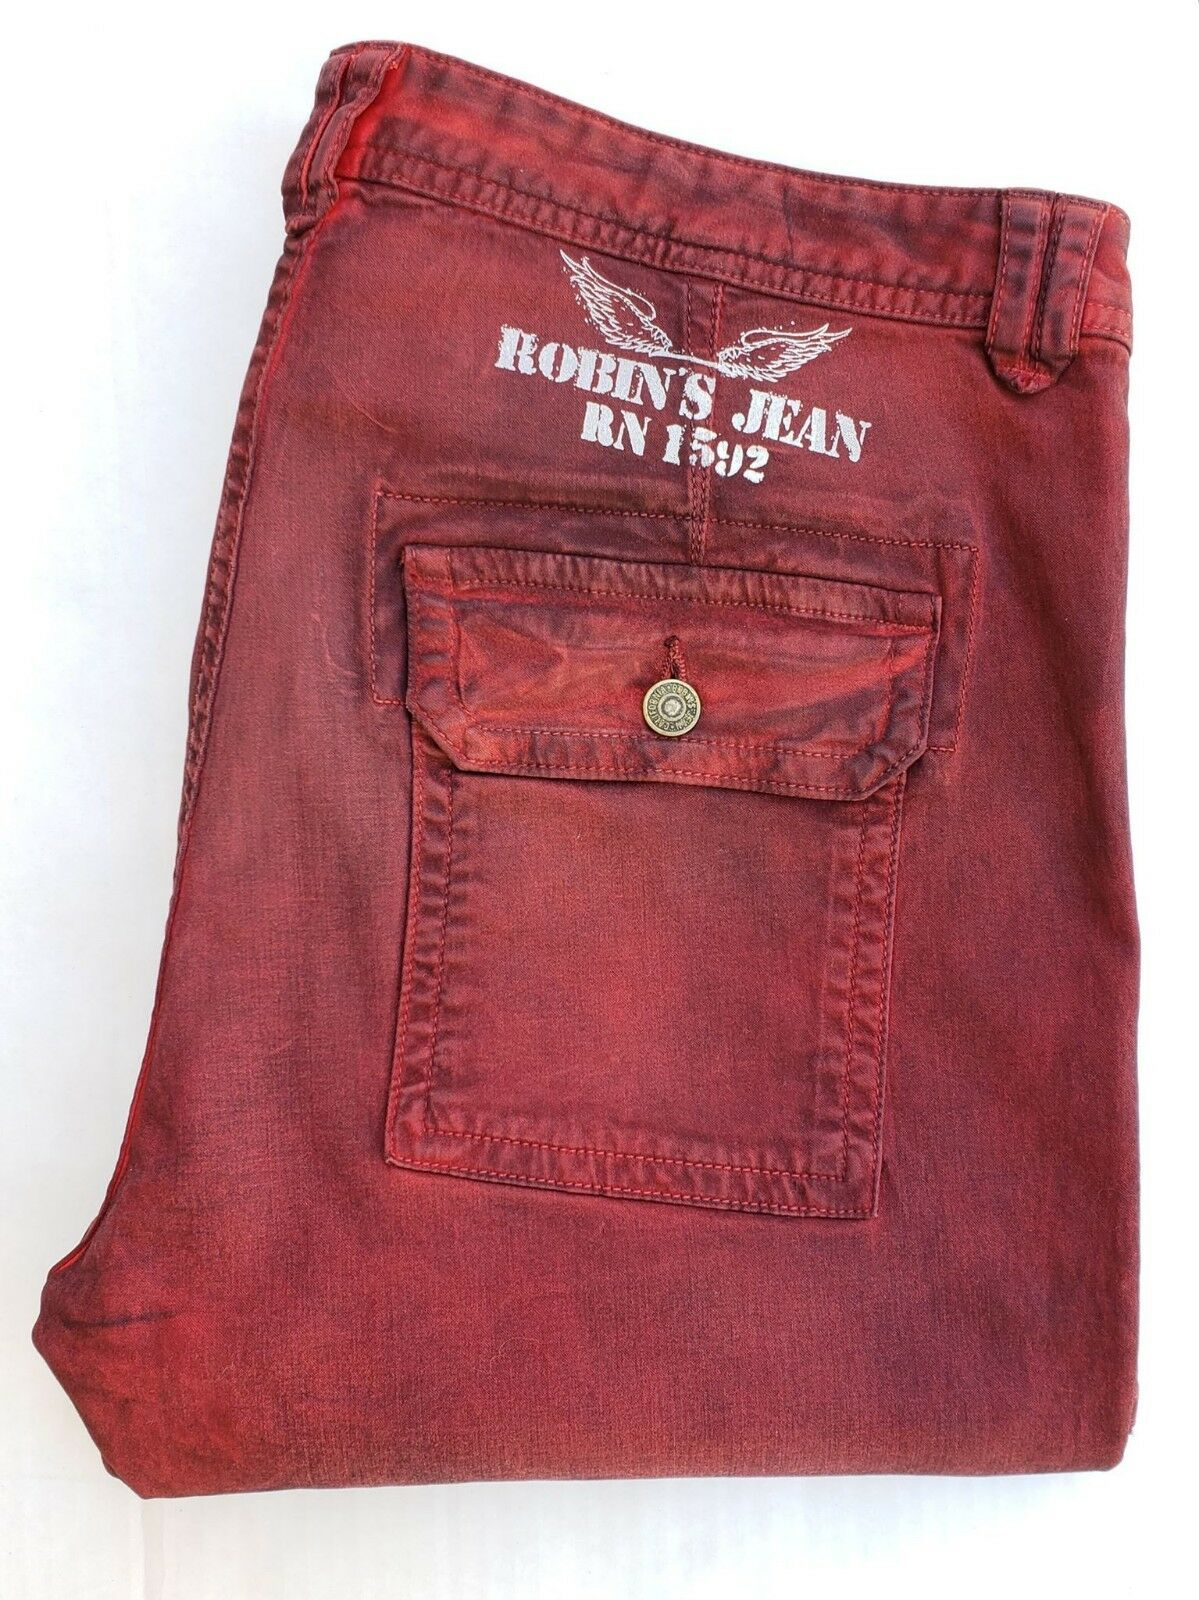 New Men'S ROBIN'S JEAN sz 36 MECHANIC Slim Jeans -Dusty Red